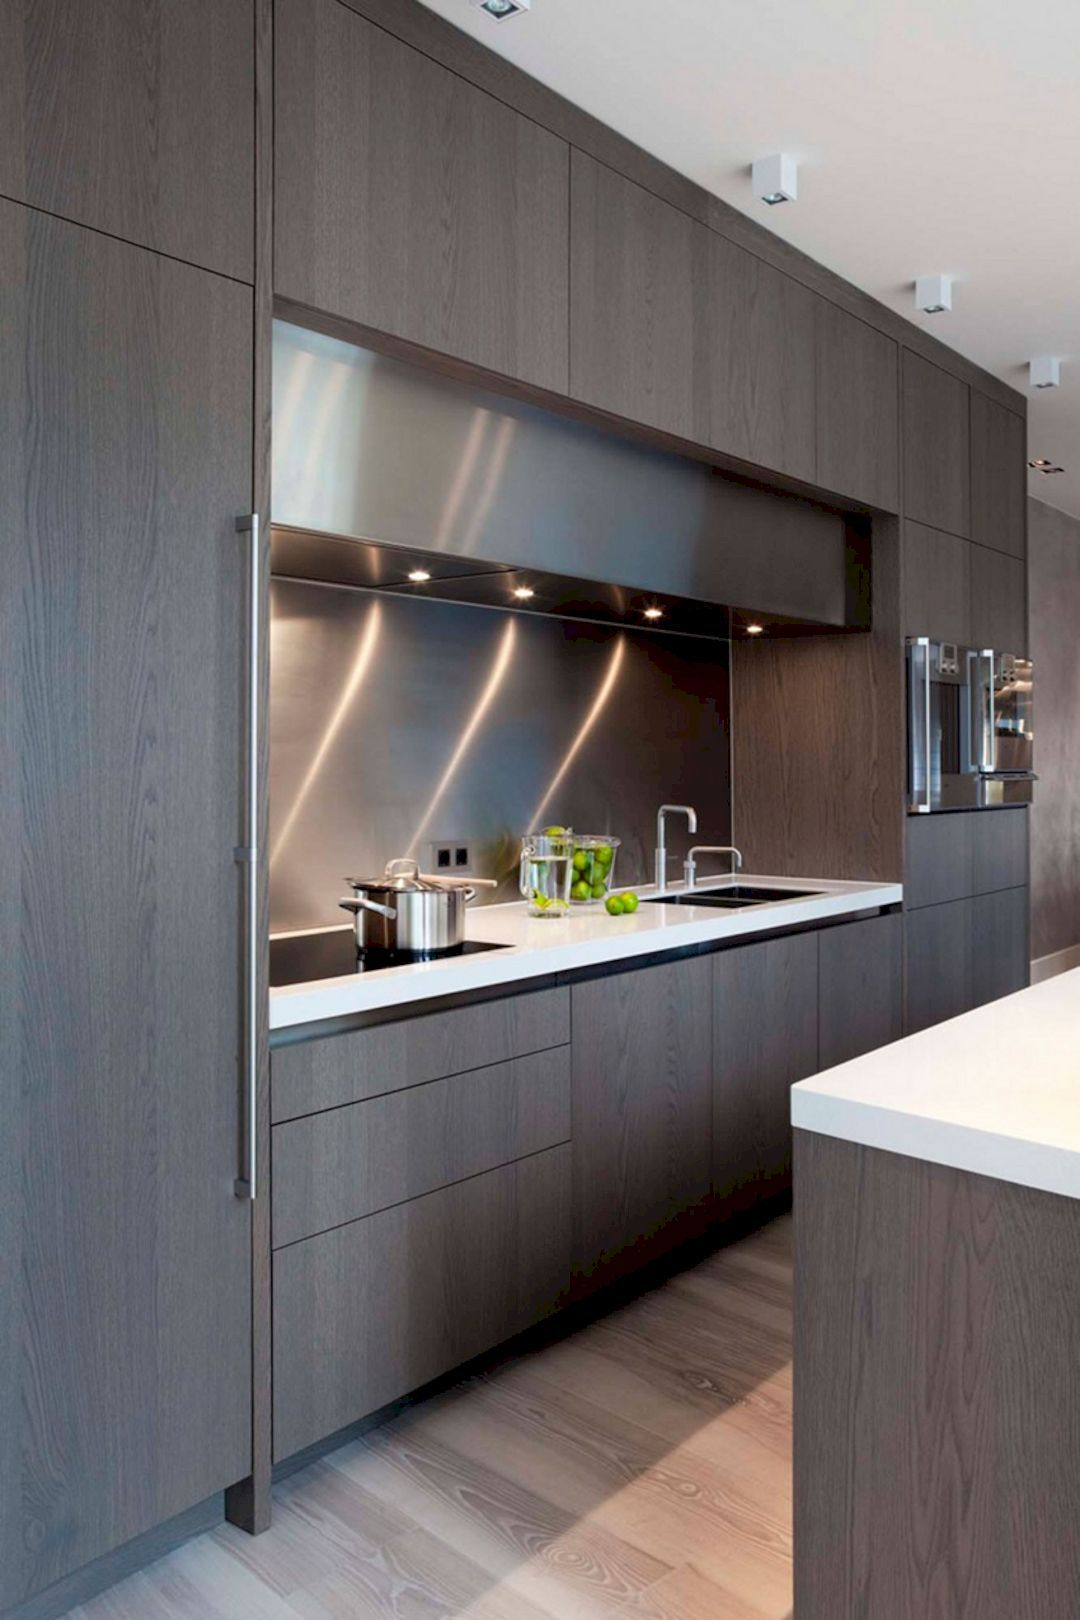 Perfect Stylish Modern Kitchen Cabinet: 127 Design Ideas  Https://www.futuristarchitecture.com/20591 Modern Kitchen Cabinet.html